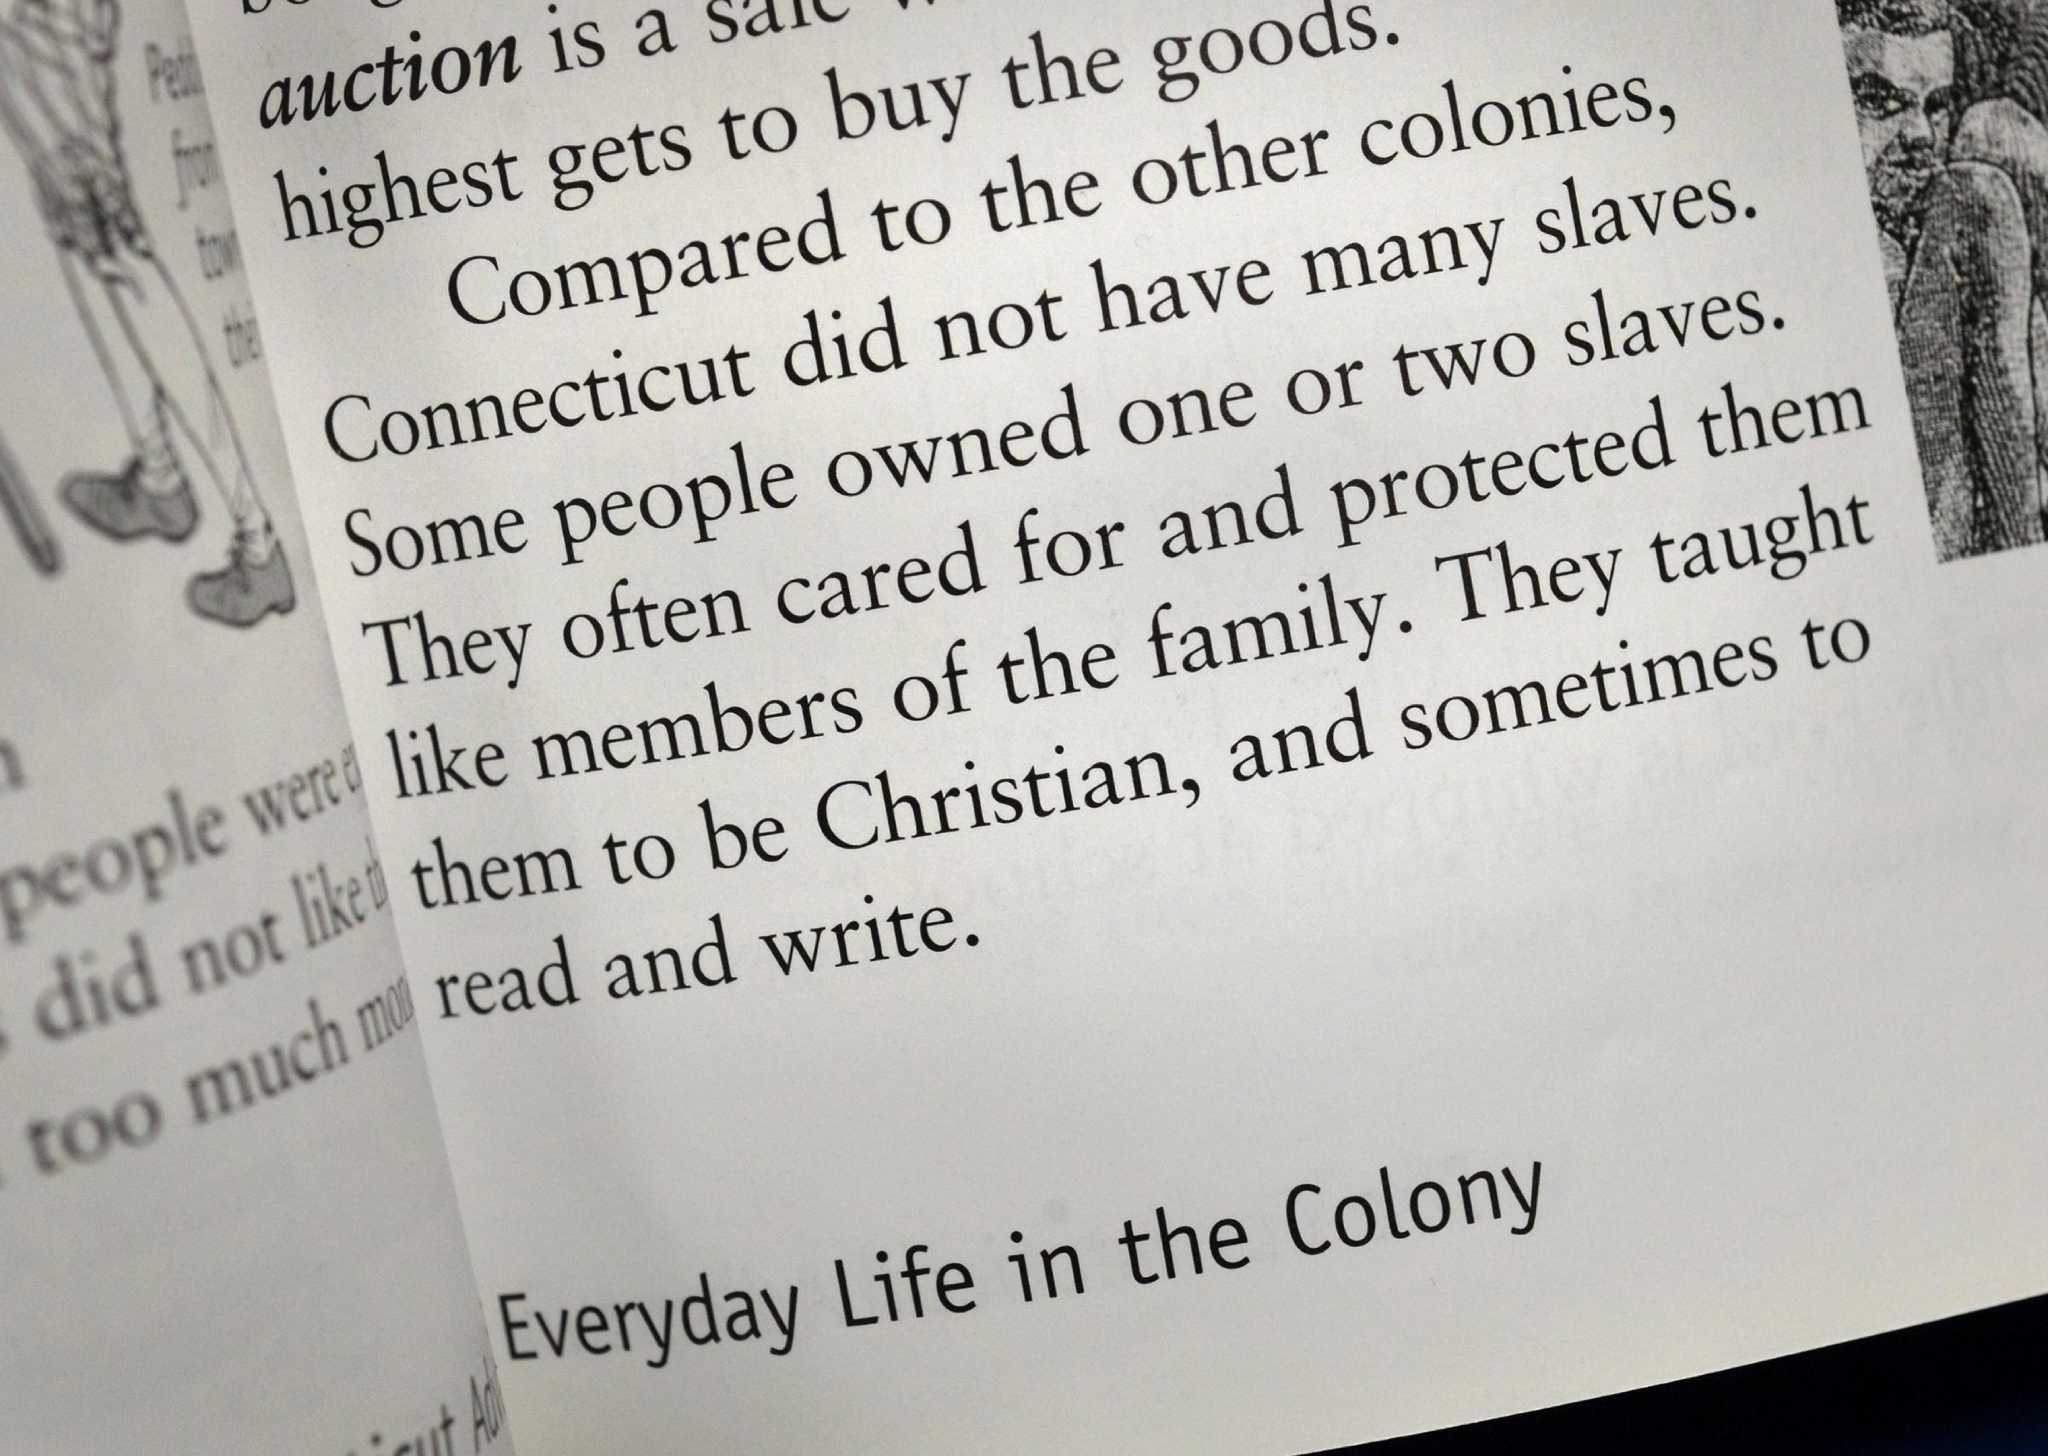 Fourth-grade textbook's take on Connecticut slavery scrutinized - The Hour